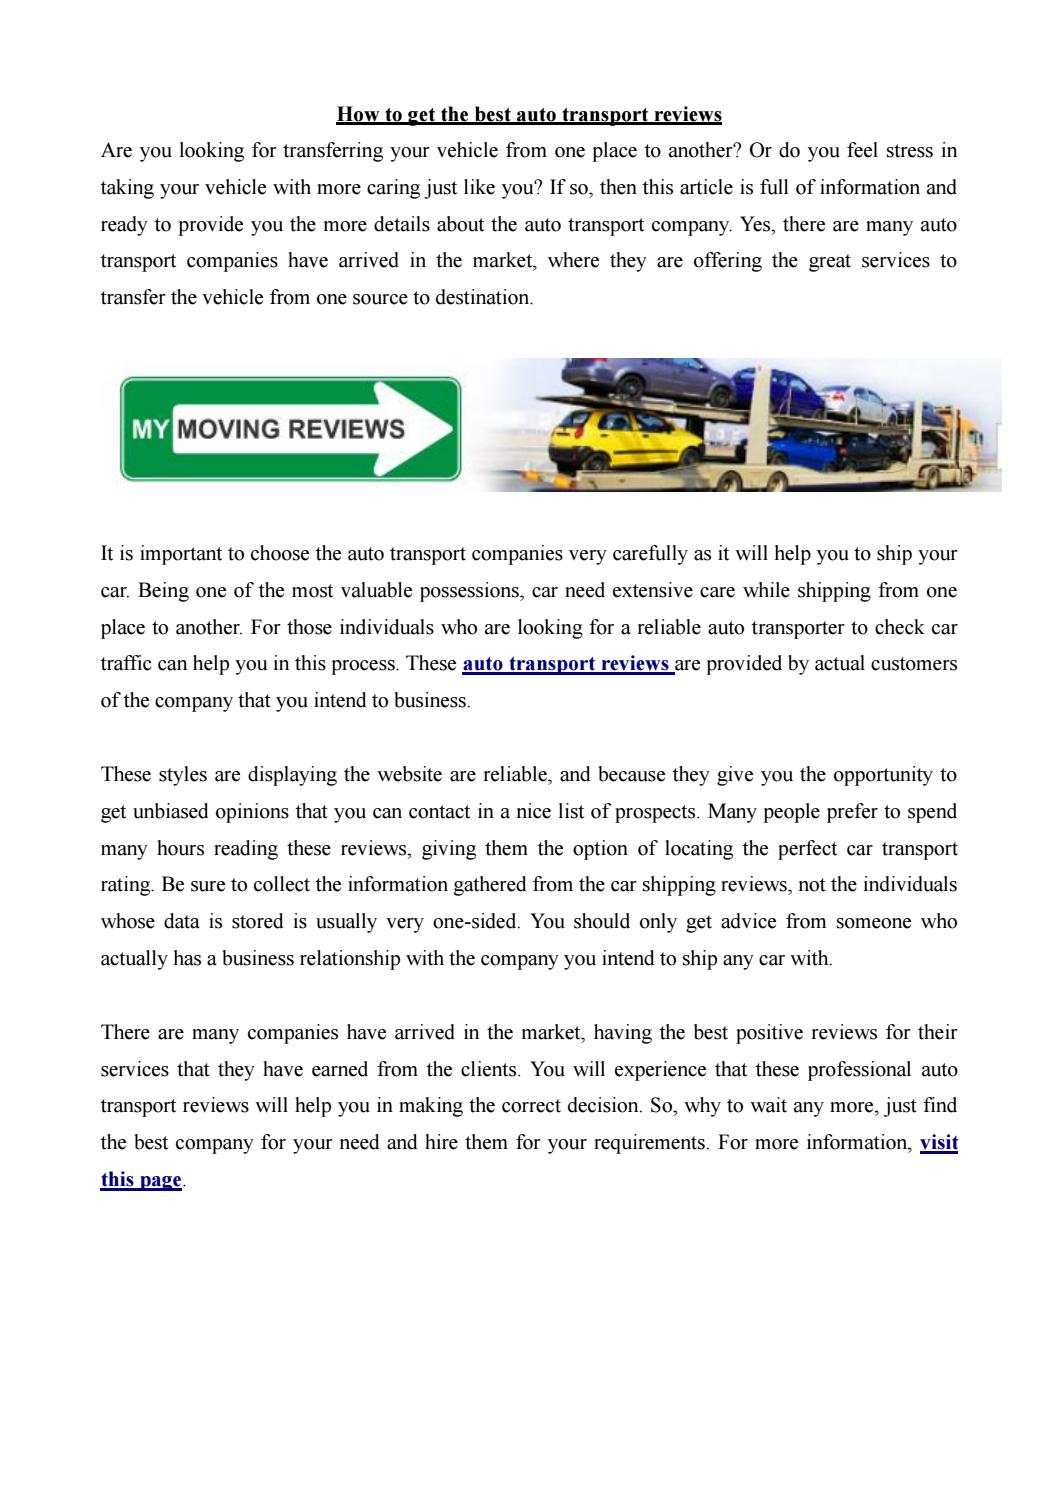 Best Auto Transport Companies >> Mymovingreviews Pdf By Emma5858 Issuu